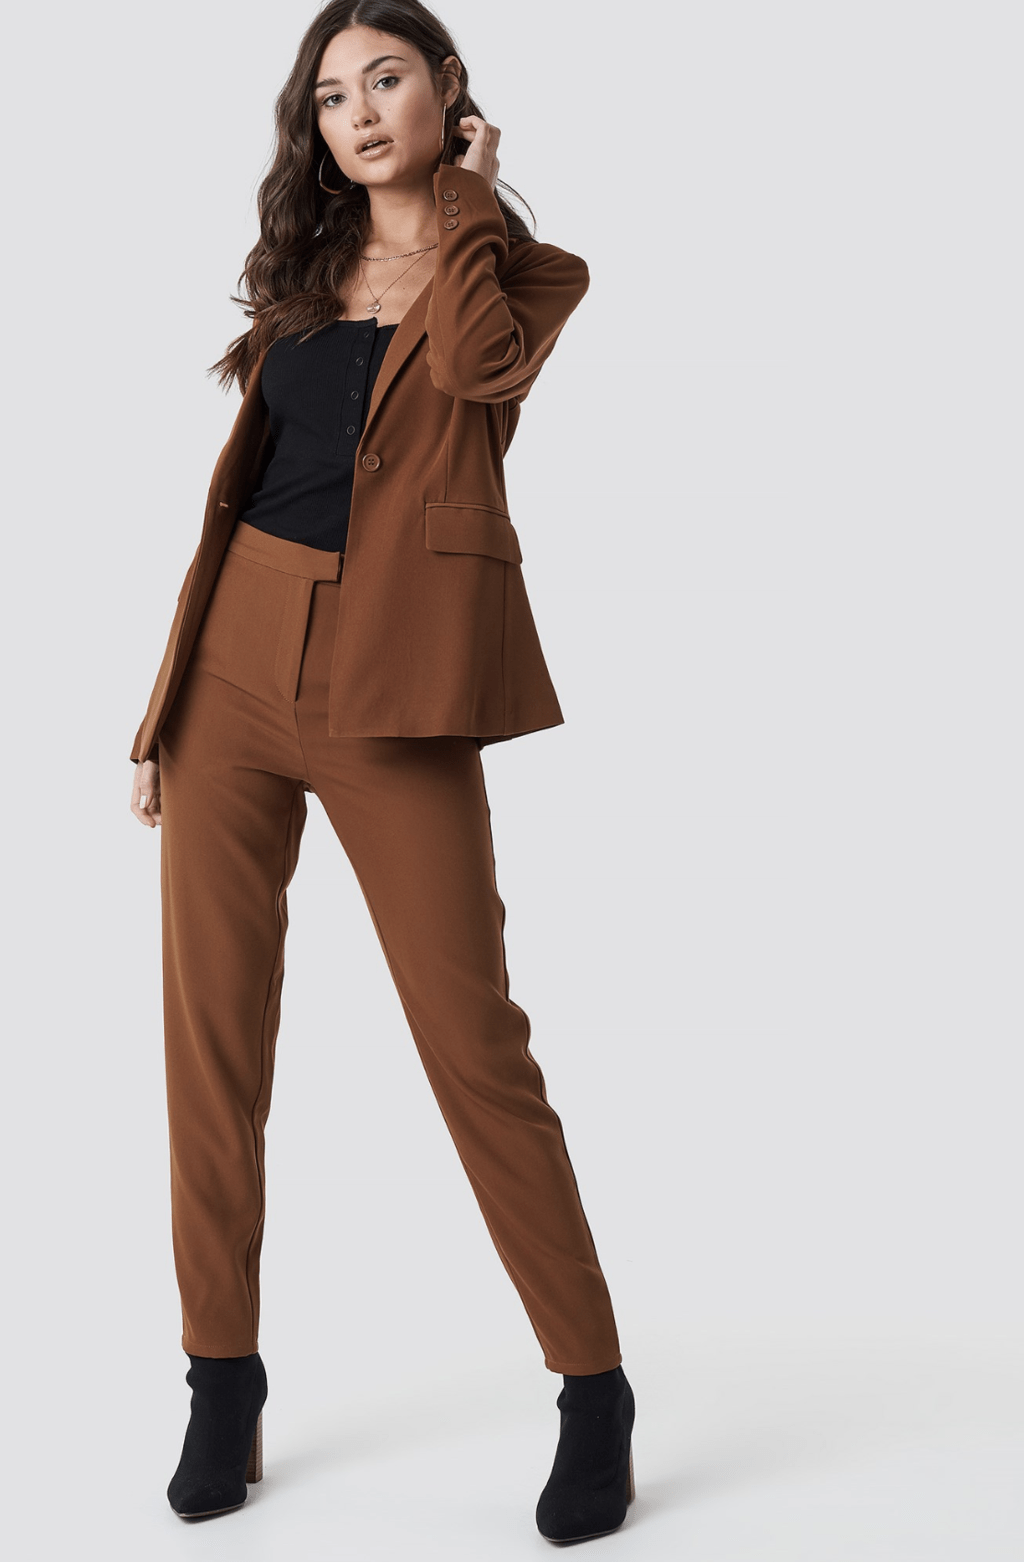 model wearing a brown suit, black top and booties